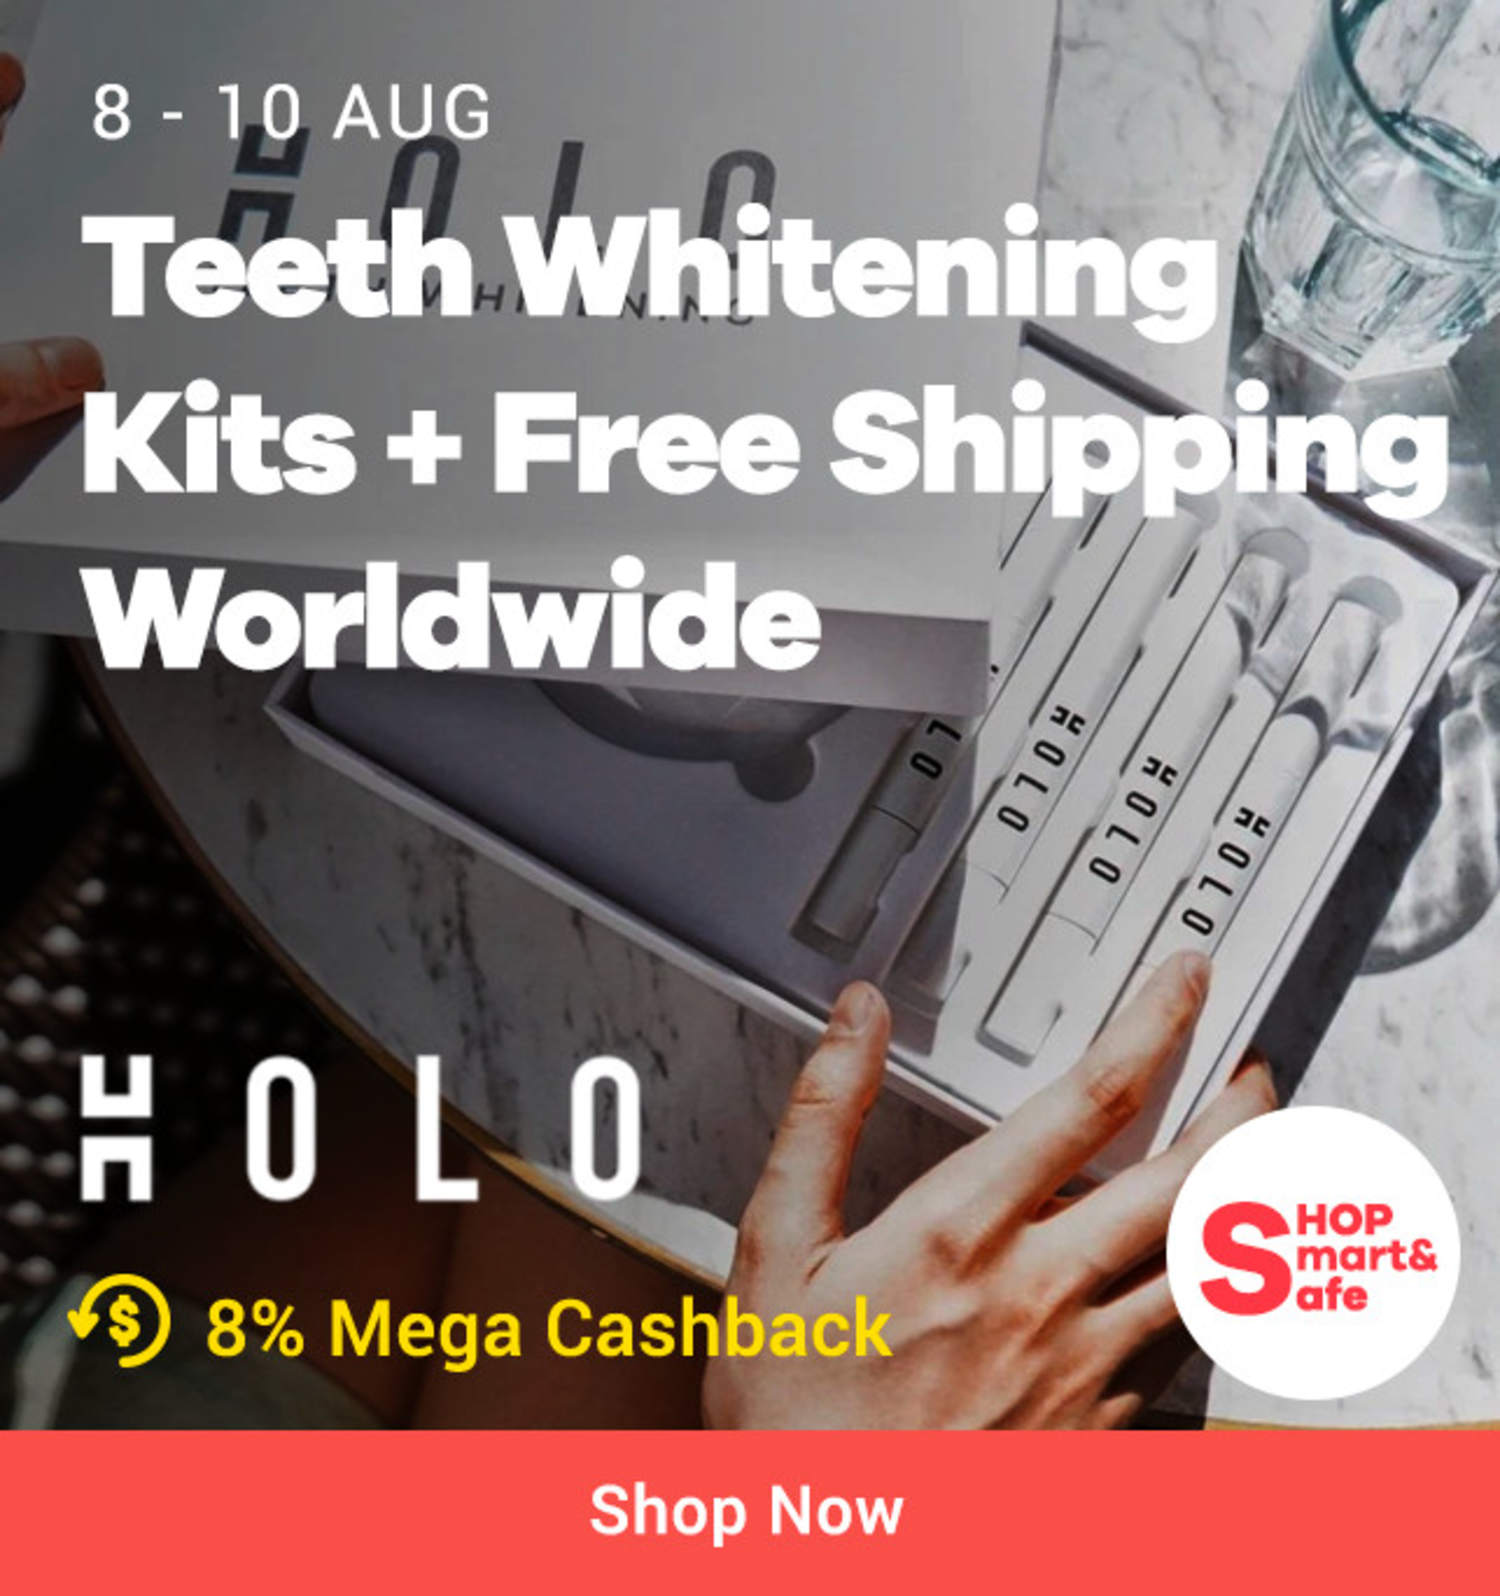 Holo: Teeth Whitening Kits + Free Shipping Worldwide